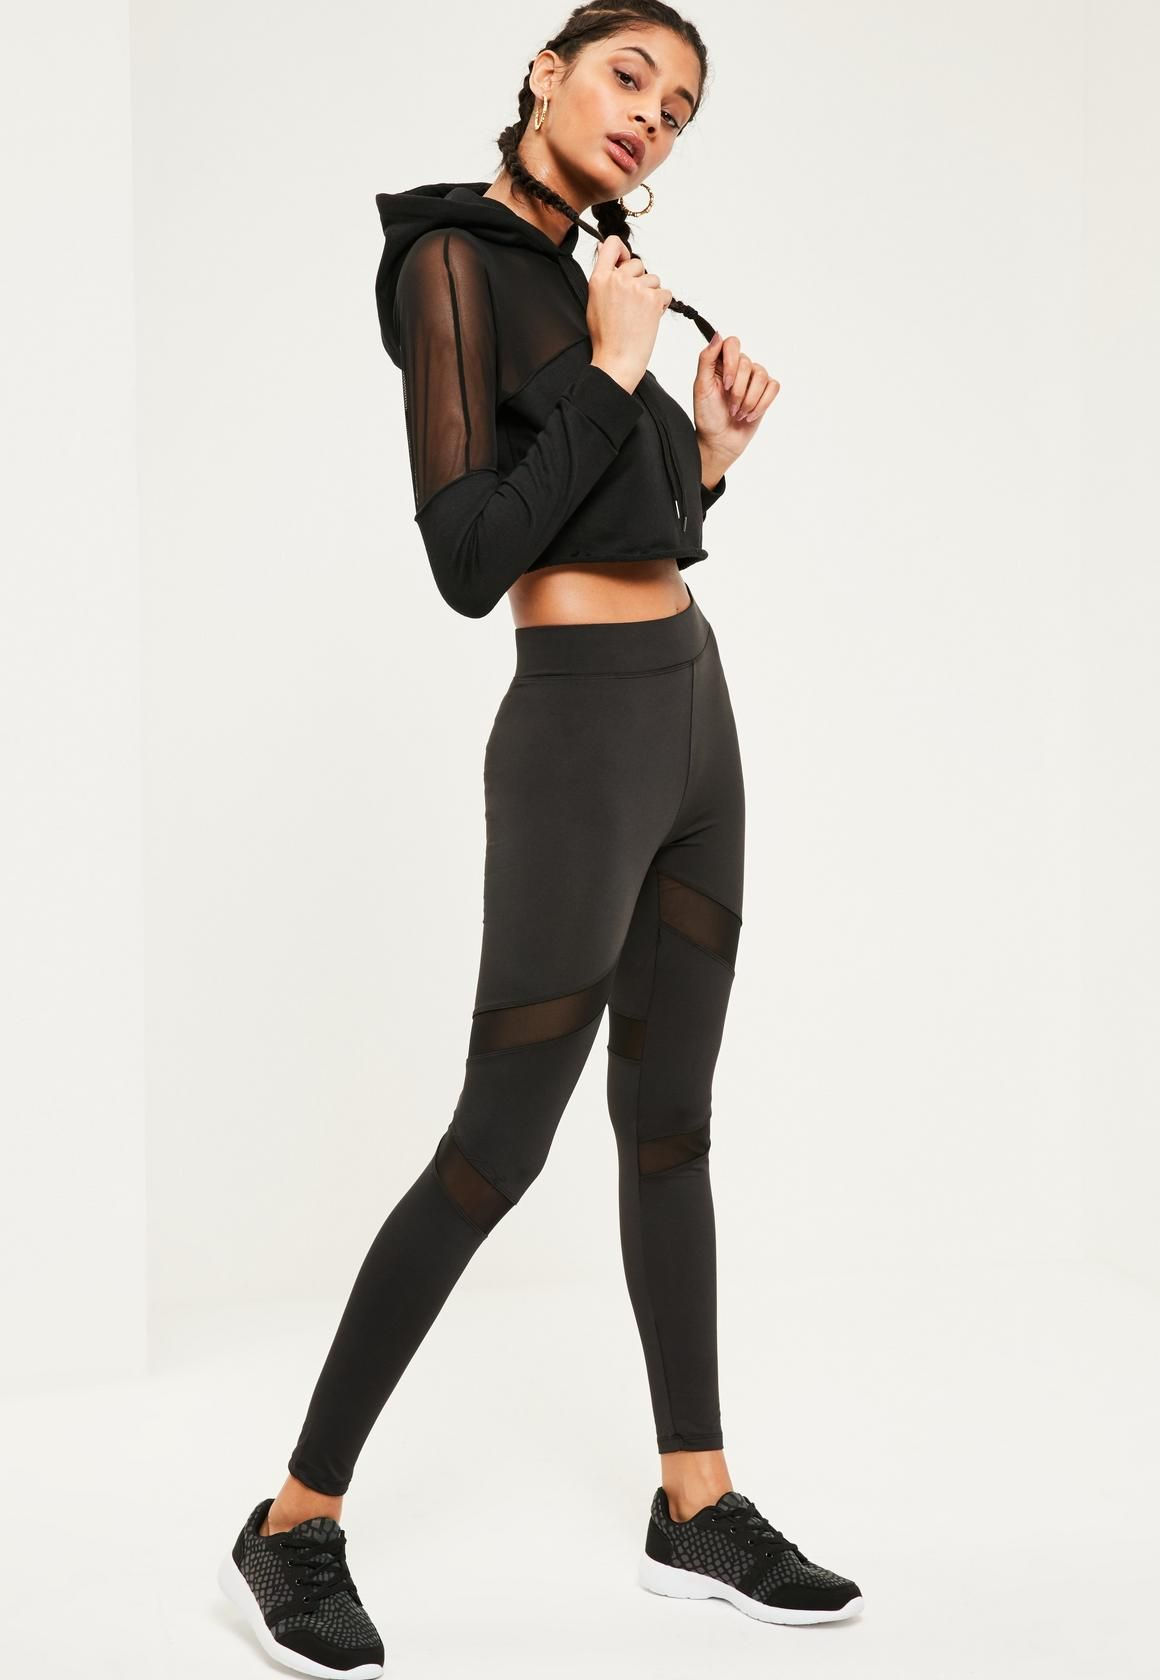 8e596a1b368262 Missguided - Active Mesh Panel Gym Leggings Black | Activewear ...